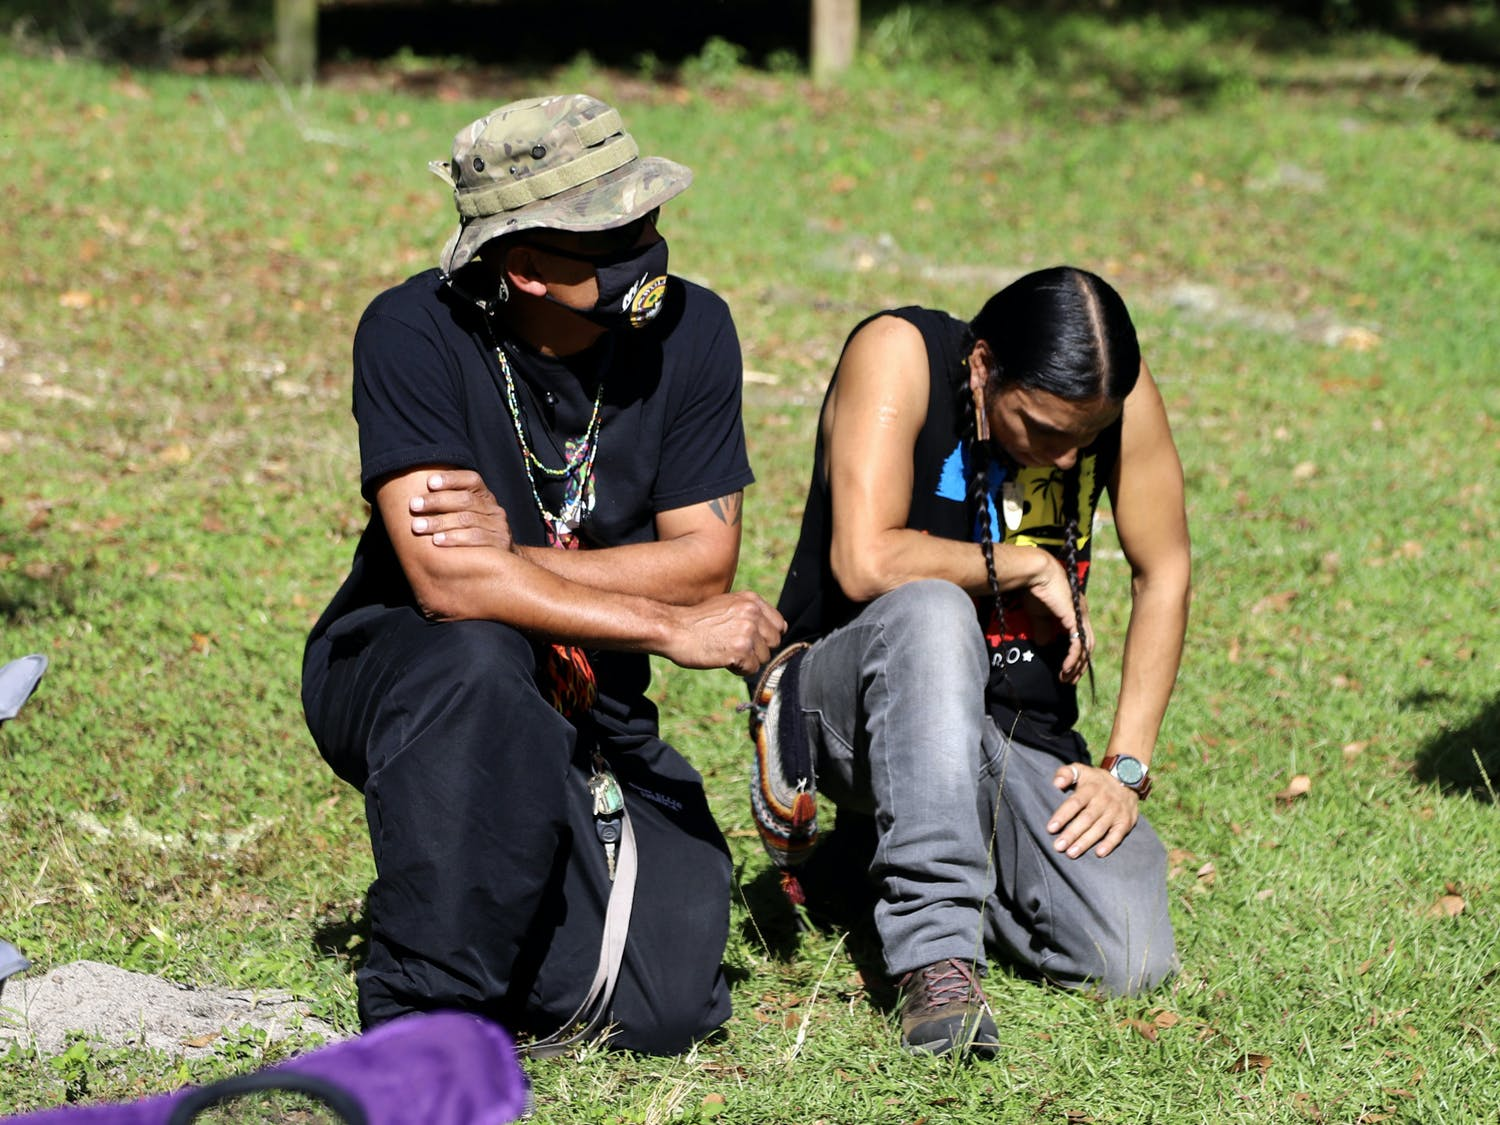 Robert Rosa (left), 52, a member of the Borinquen Taino nation and Stuart Flores (right), a member of the Algonquin Maya nation, kneel together, during the protest, in honor of their ancestors on Thursday, Dec. 3, 2020. The two explained that in Native American culture ancestors return to the soil after they pass away.